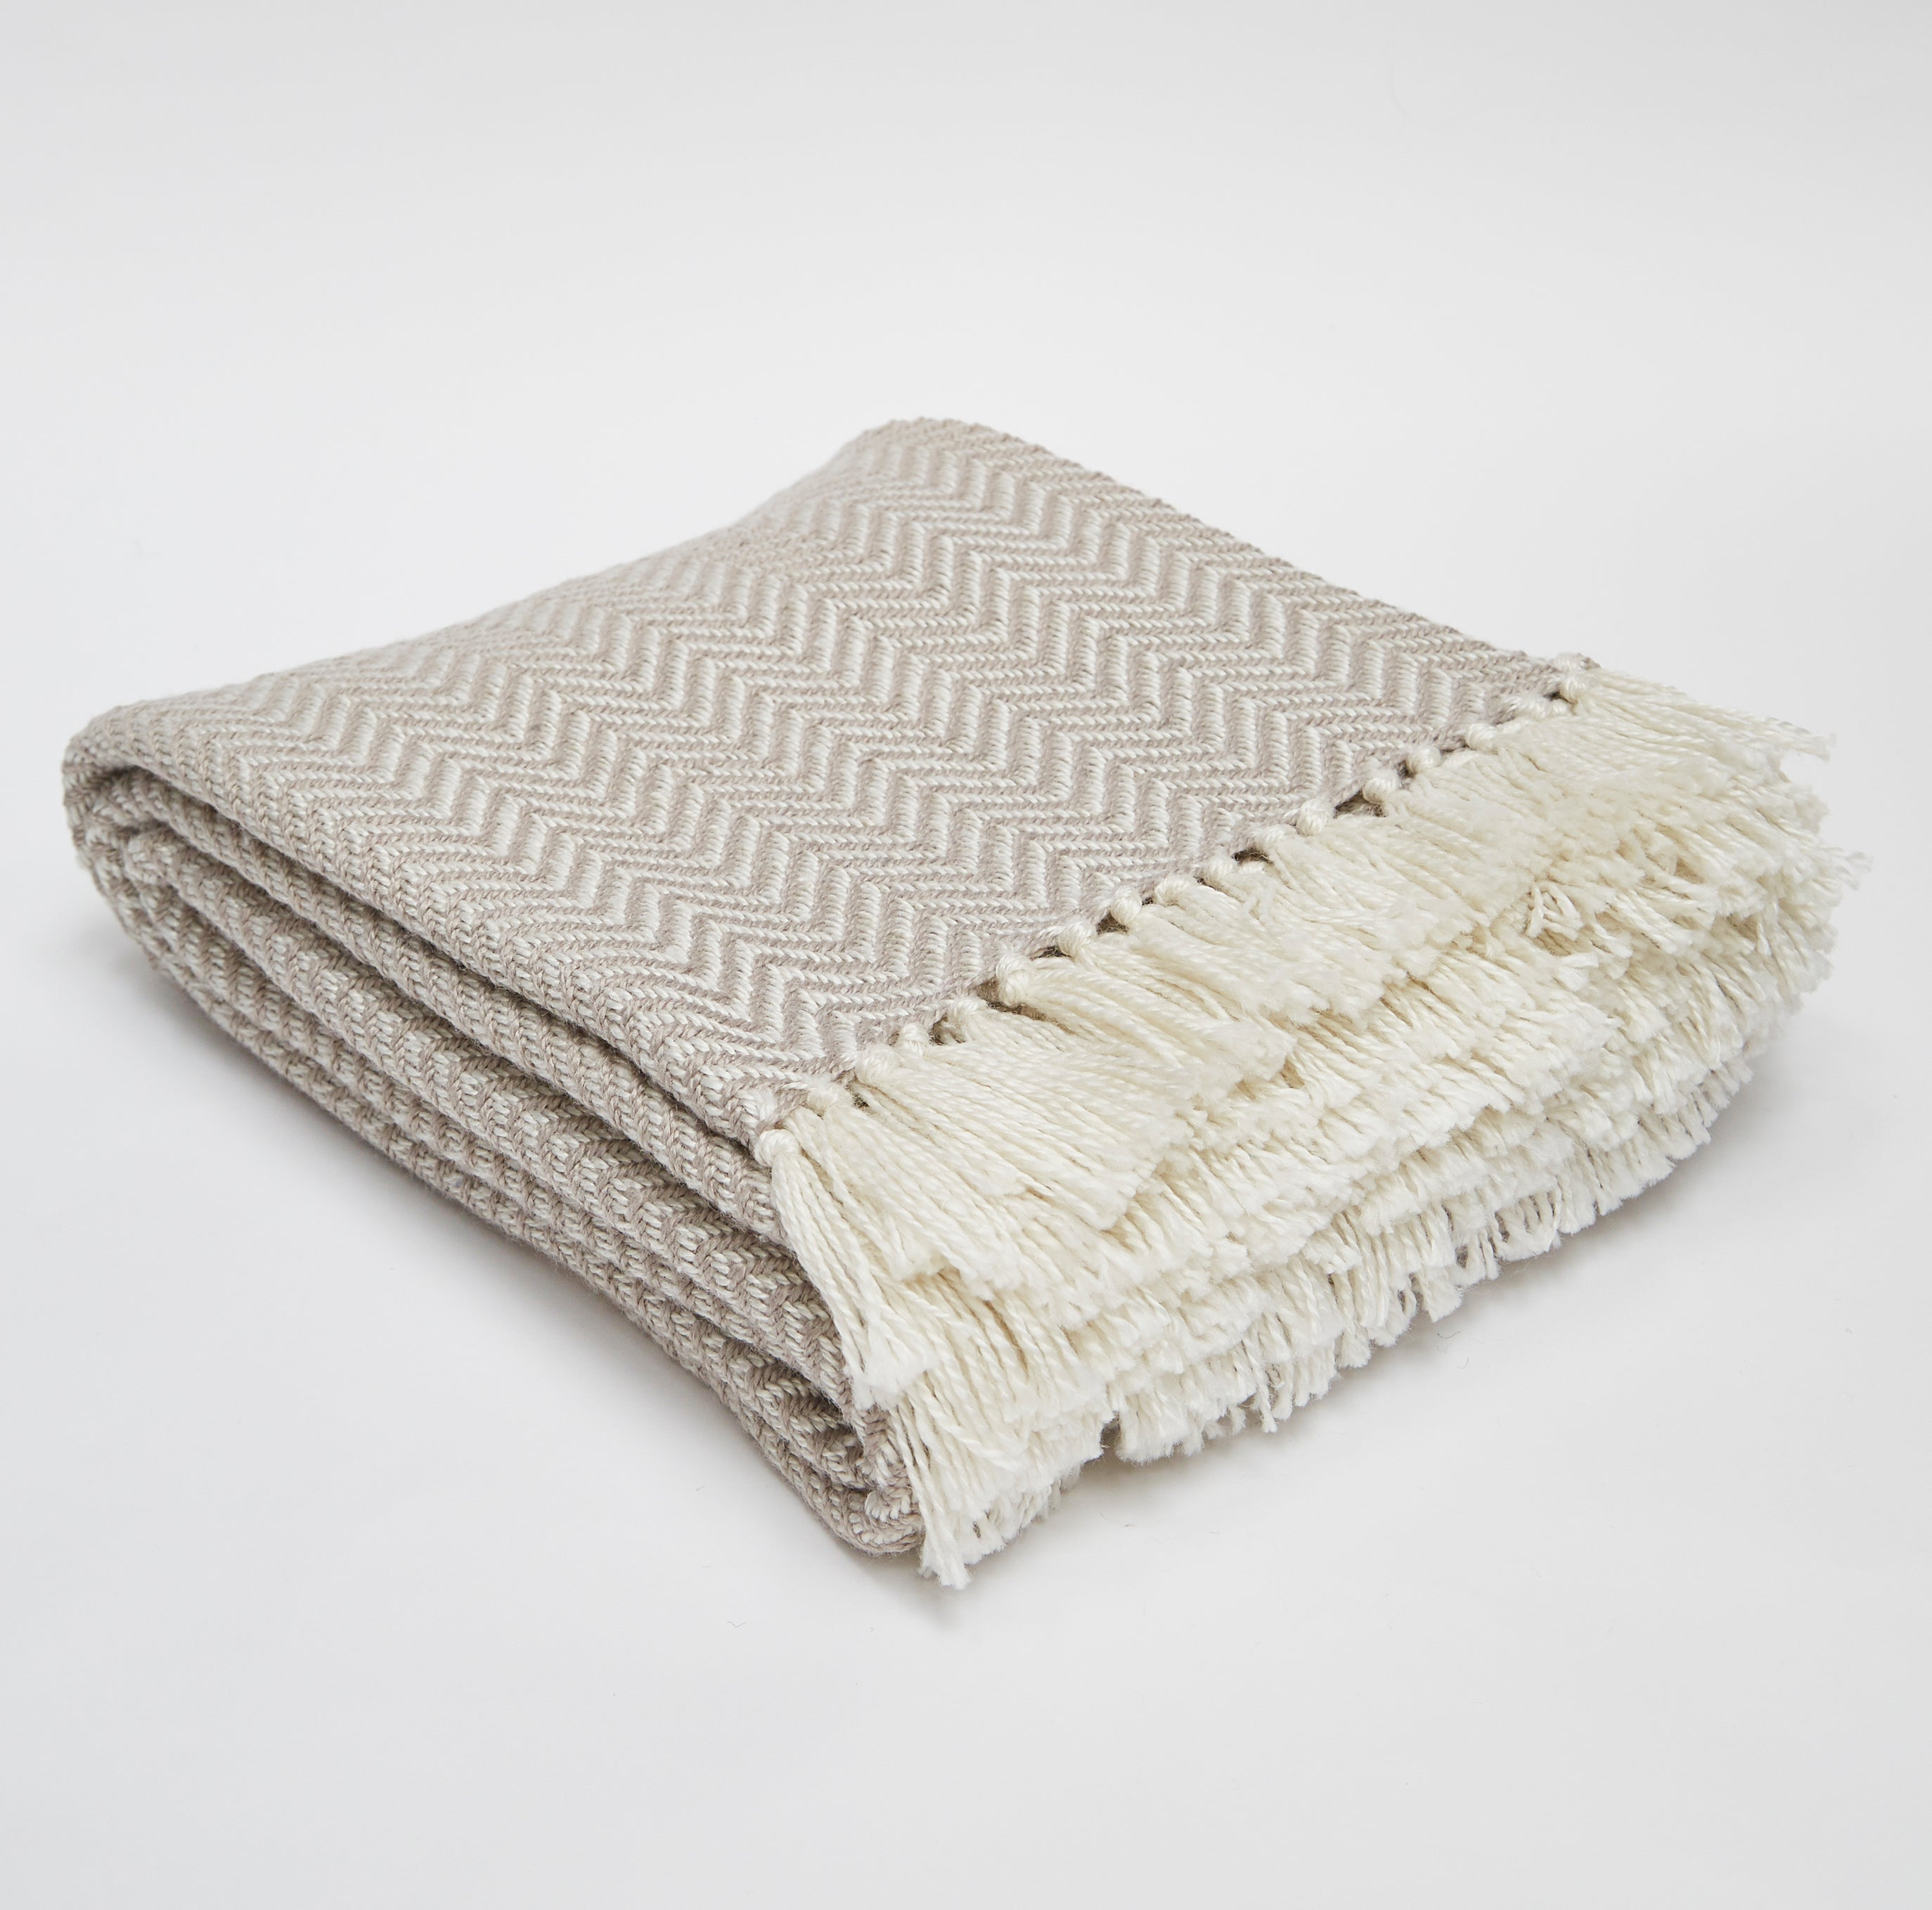 Weaver Green Throw/Blanket - Diamond Chinchilla